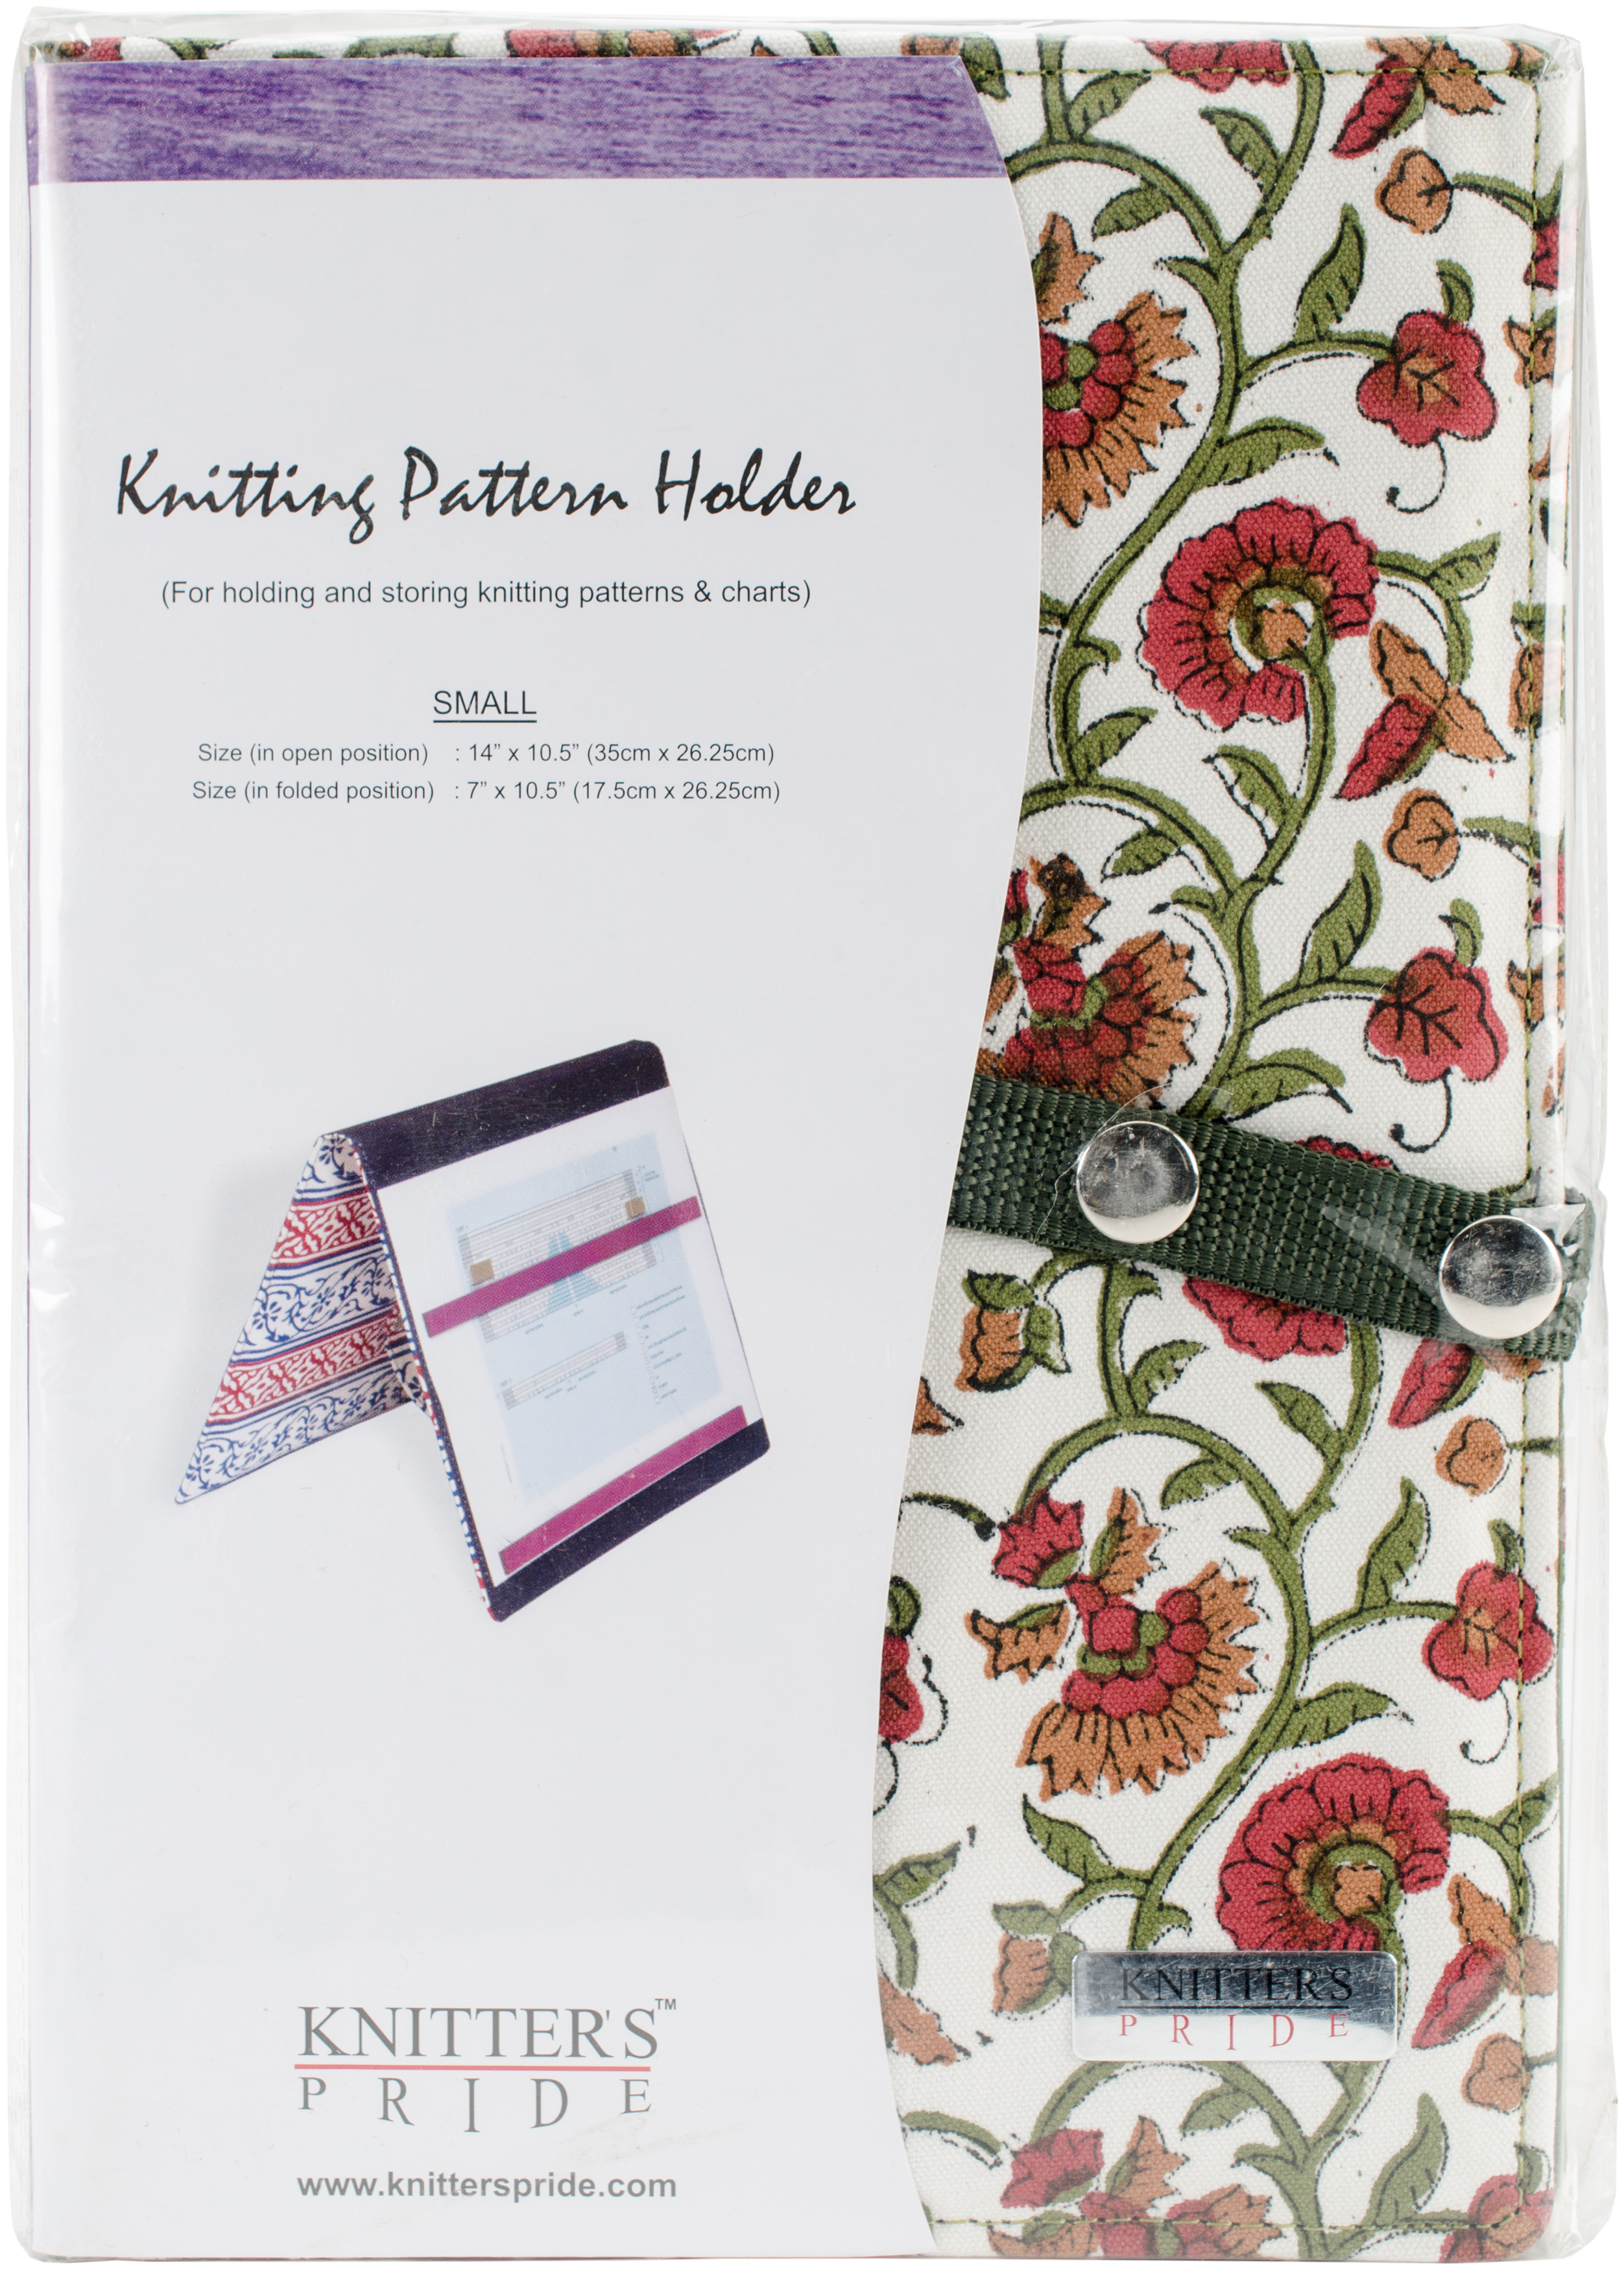 Knitter's Pride Pattern Holder Small - Aspire